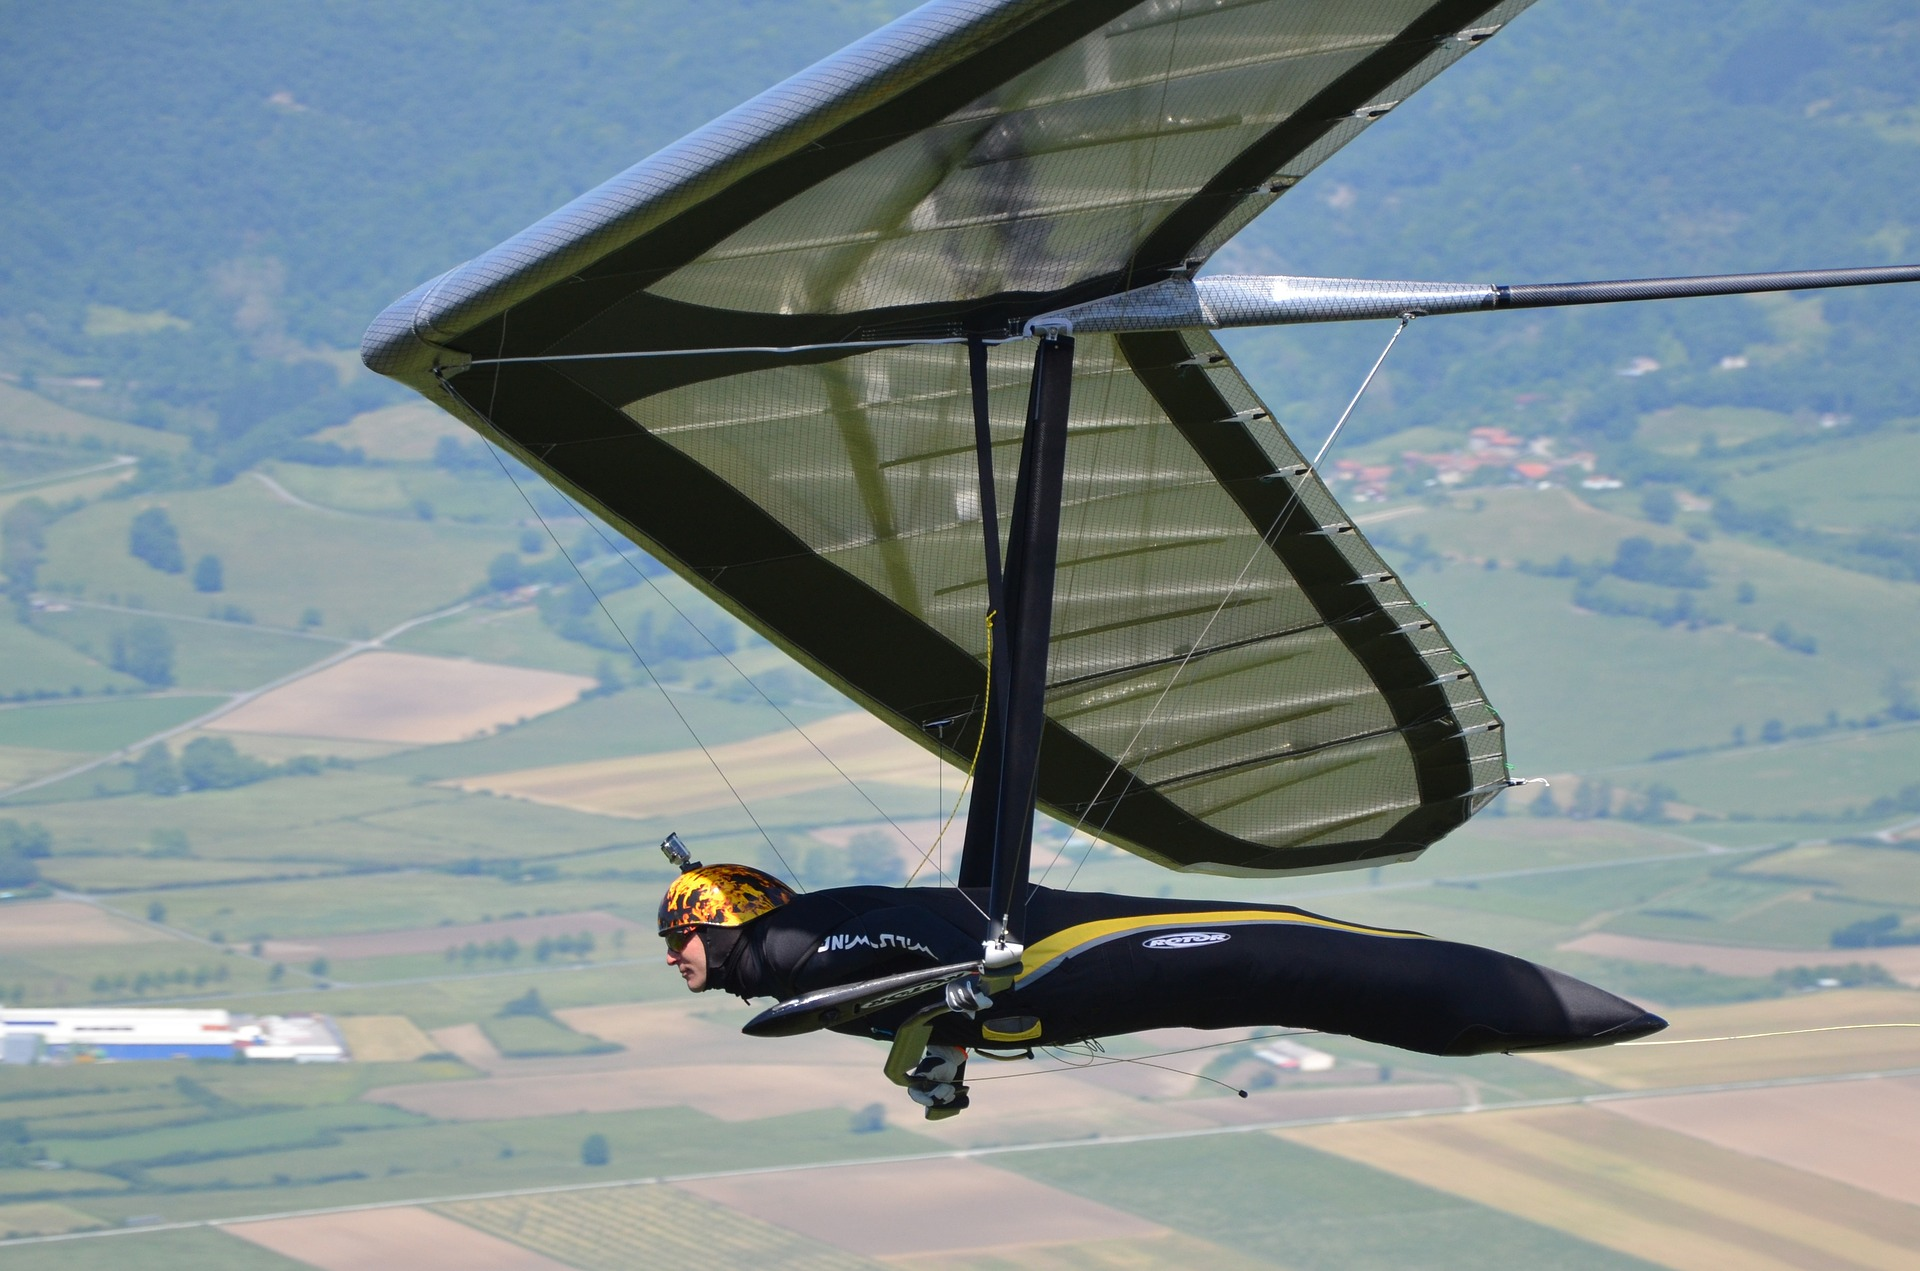 Hang Gliding in South Carolina